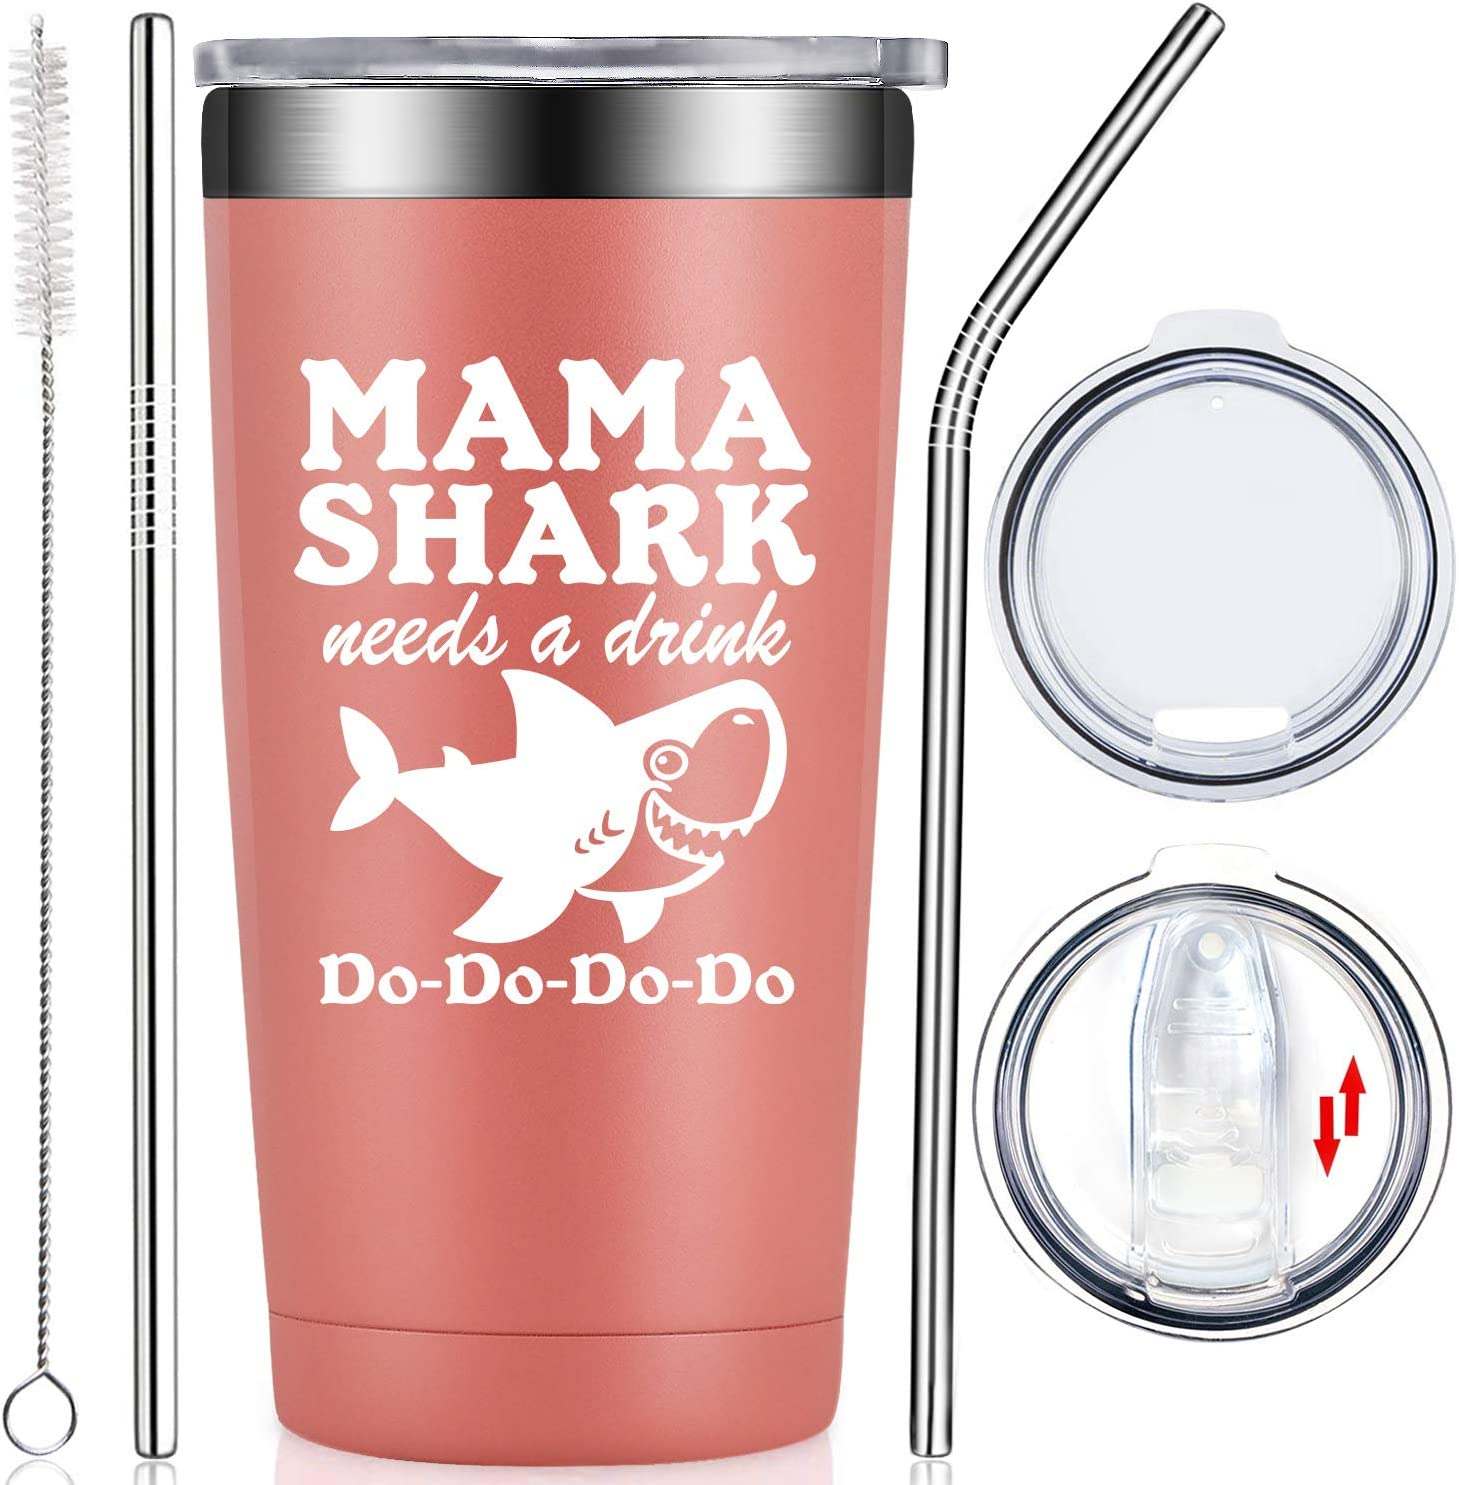 Fufendio Gifts for Mom - Mama Shark Needs a Drink - Funny Best Mom Birthday Gifts from Daughter, Son, Kids - Mother's Day Present Idea for New Mom, Mommy, Wife, Women - Tumbler Cup with Lid and Straw